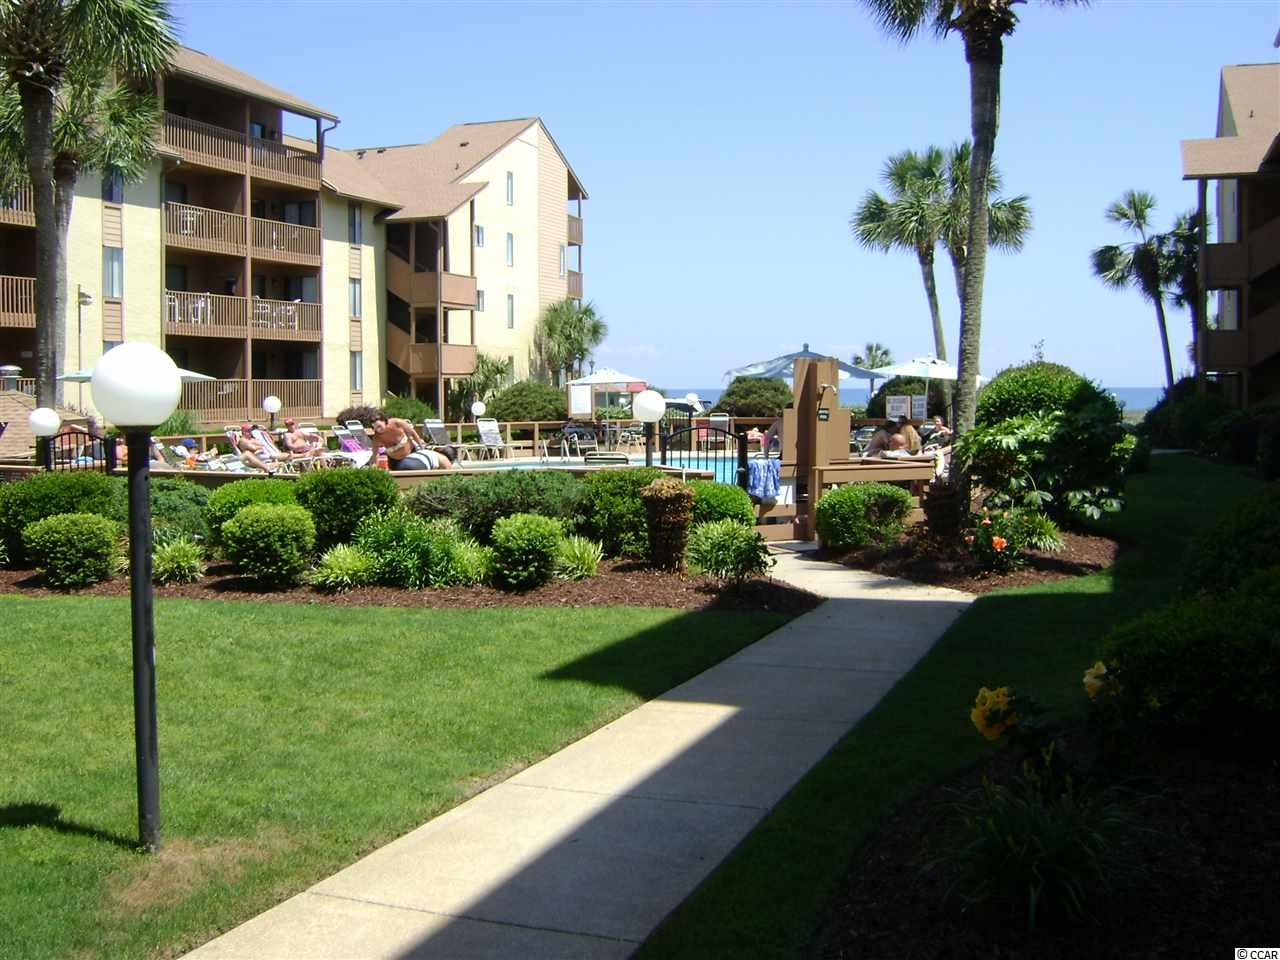 Condo For Sale At Anchorage Ii In Myrtle Beach South Carolina Unit 105 Listing Mls Number 1619071